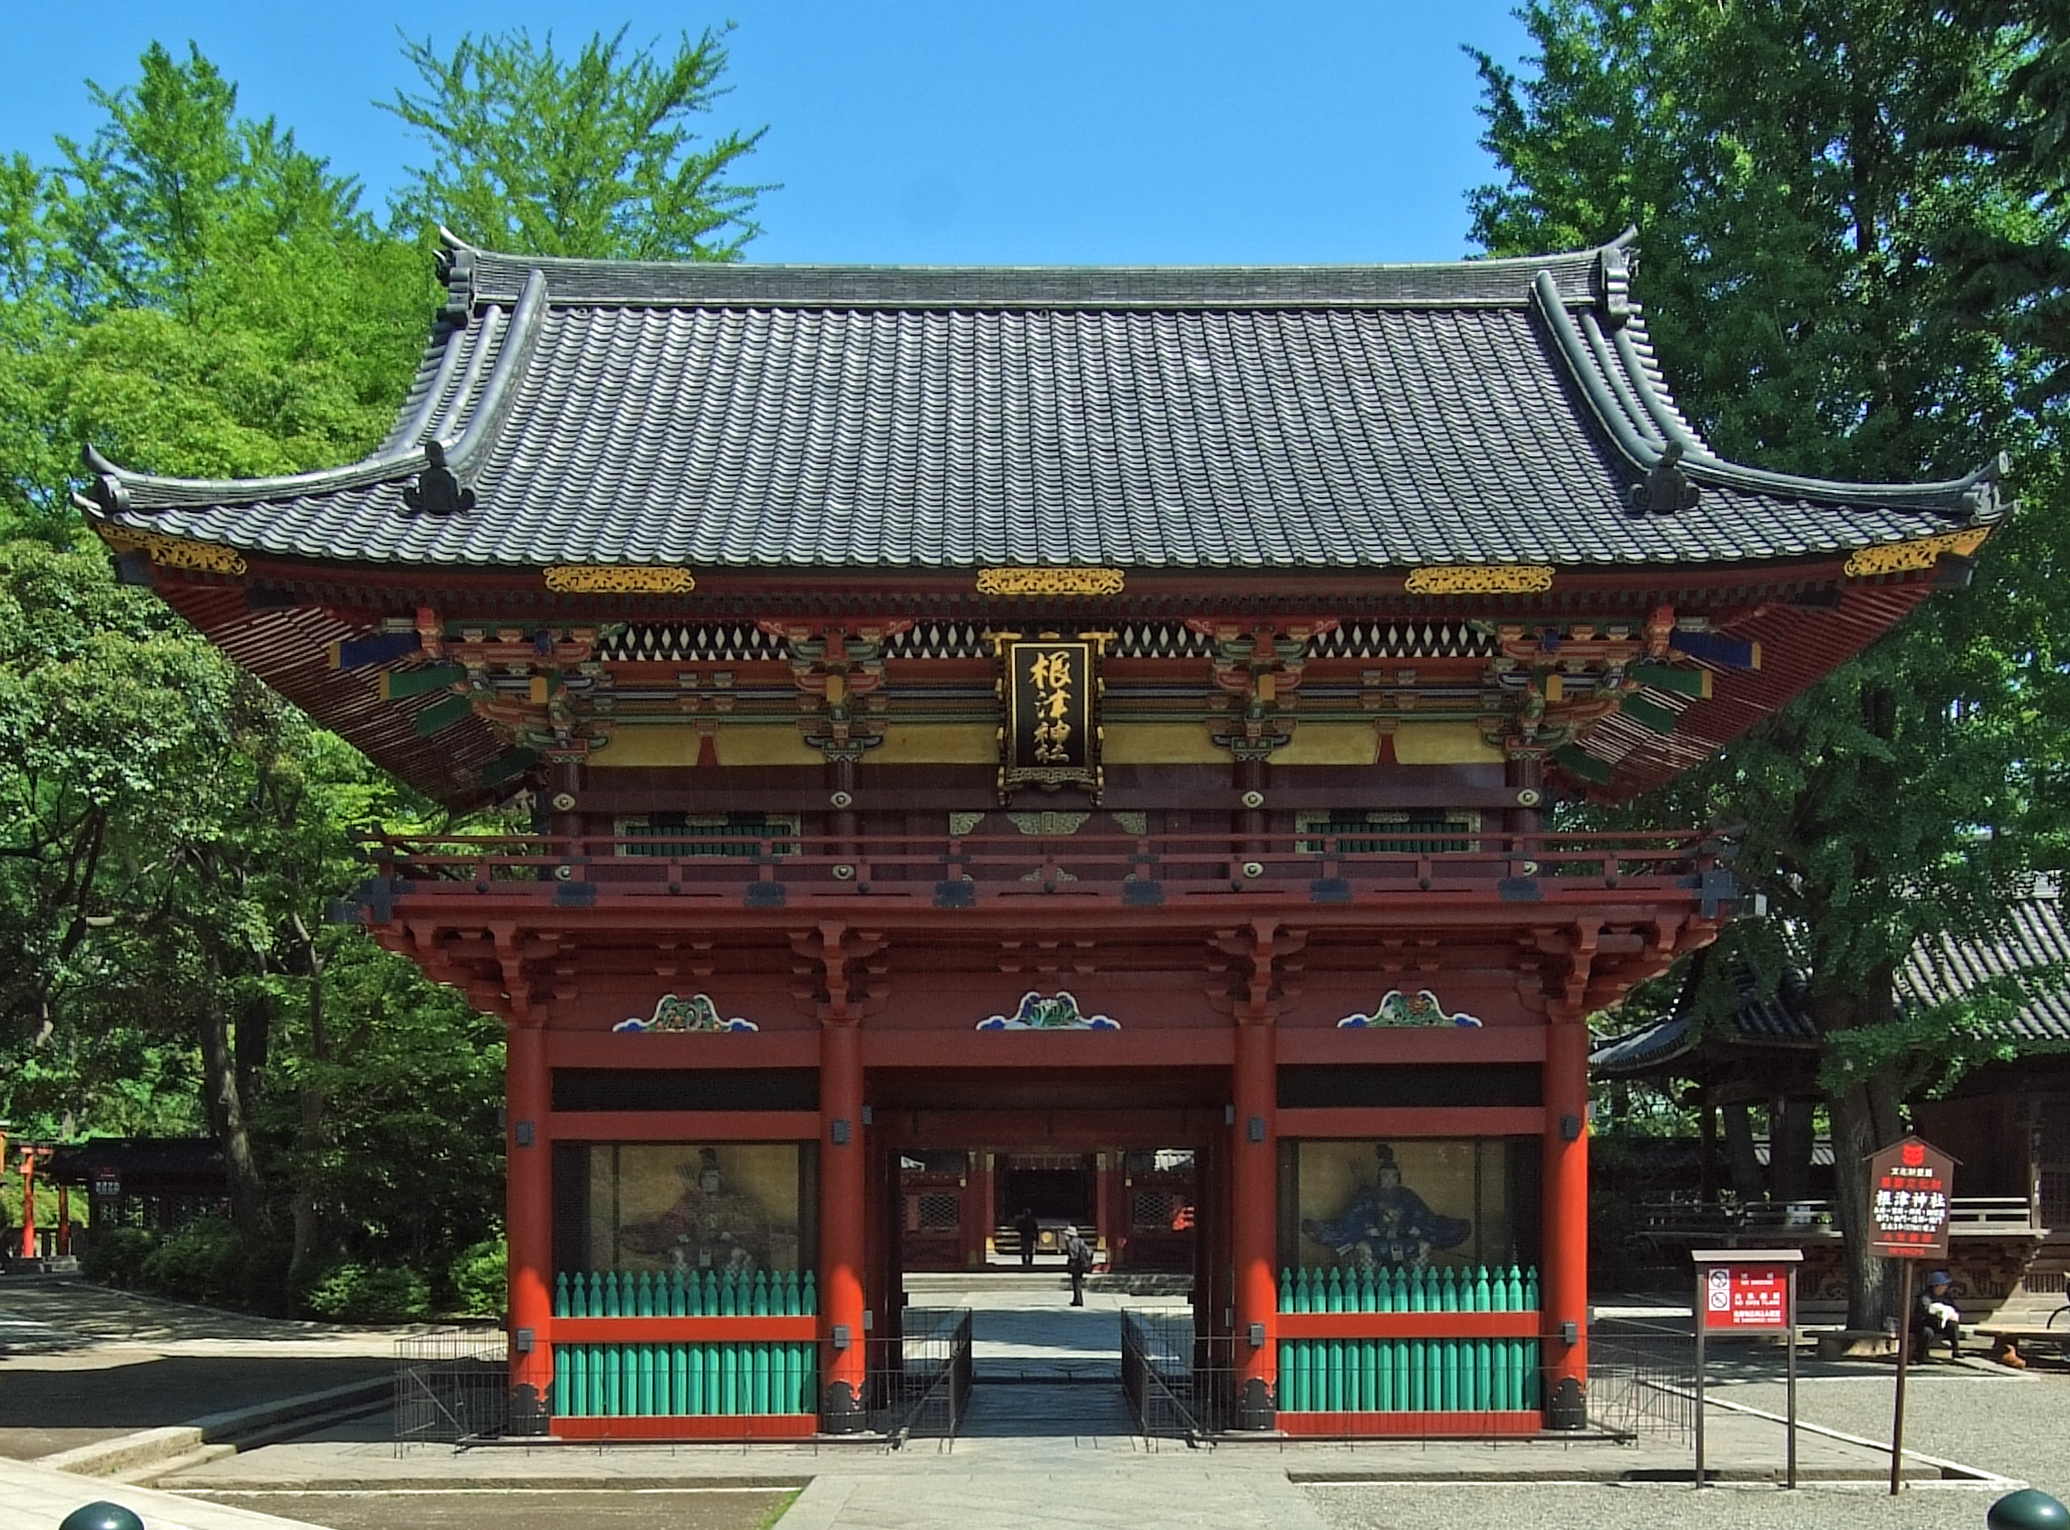 File:Nezu Shrine Romon 2010.jpg - Wikimedia Commons